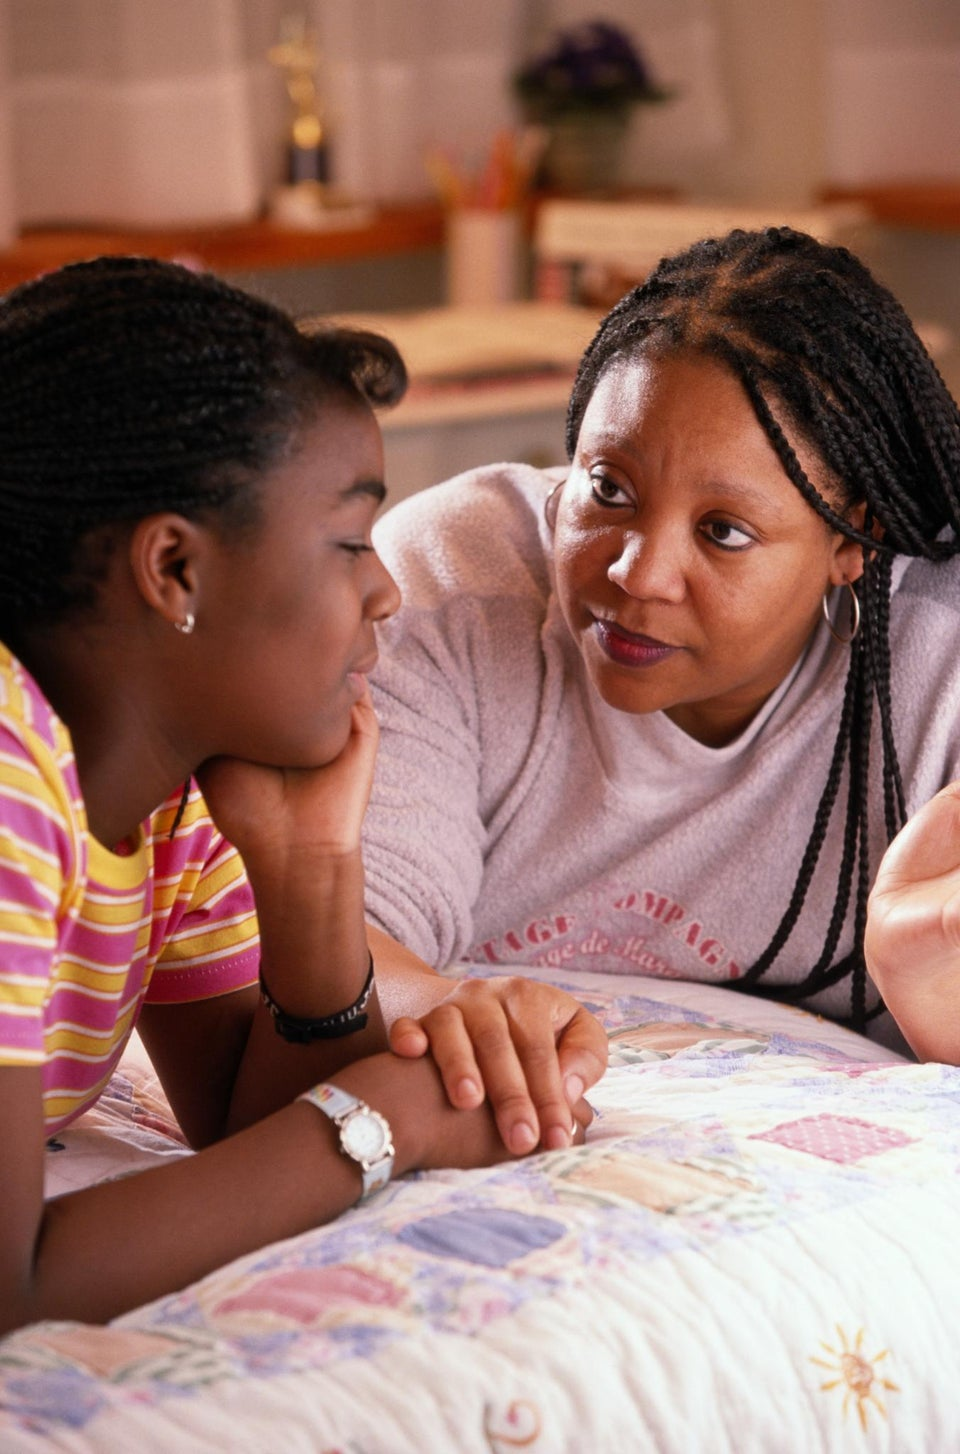 ESSENCE Poll: How Do You Educate Your Children About HIV/AIDS?